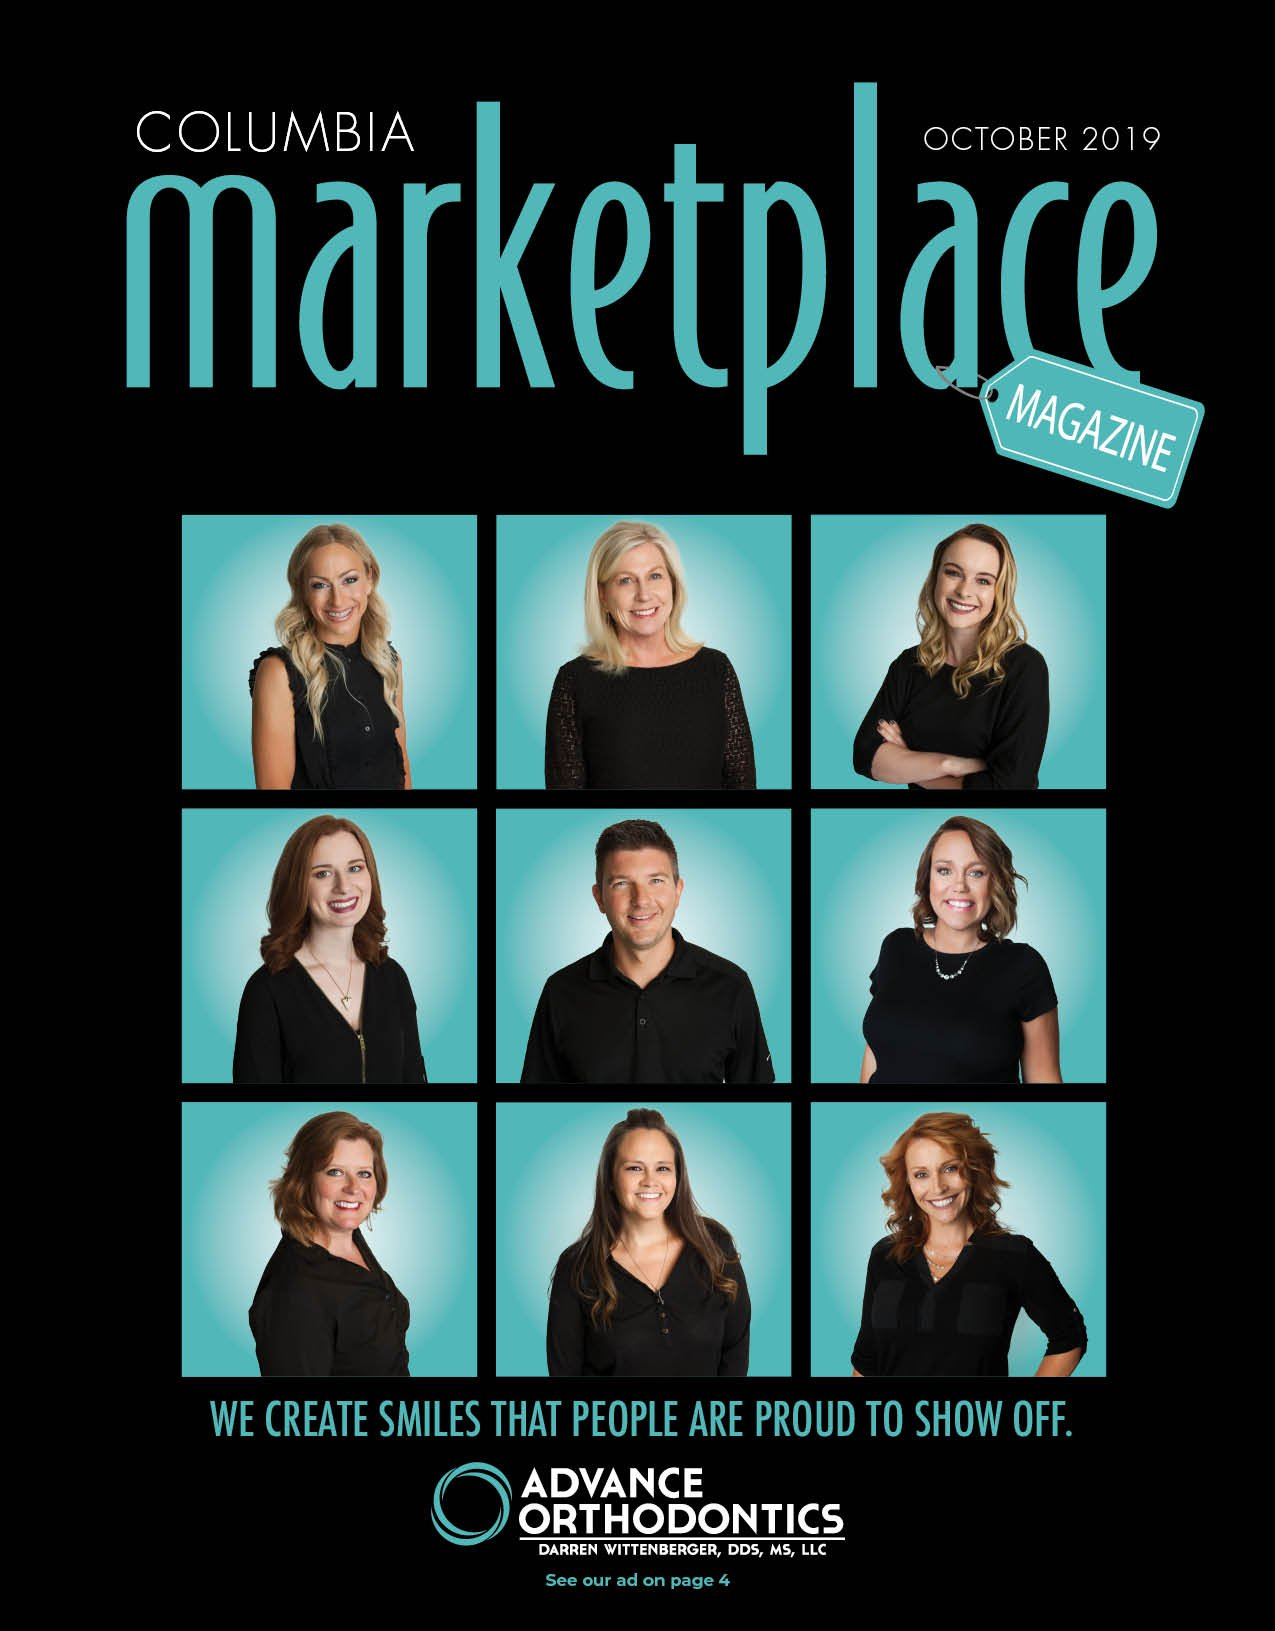 Columbia Marketplace Magazine by Modern Media Concepts October 2019 Edition 1